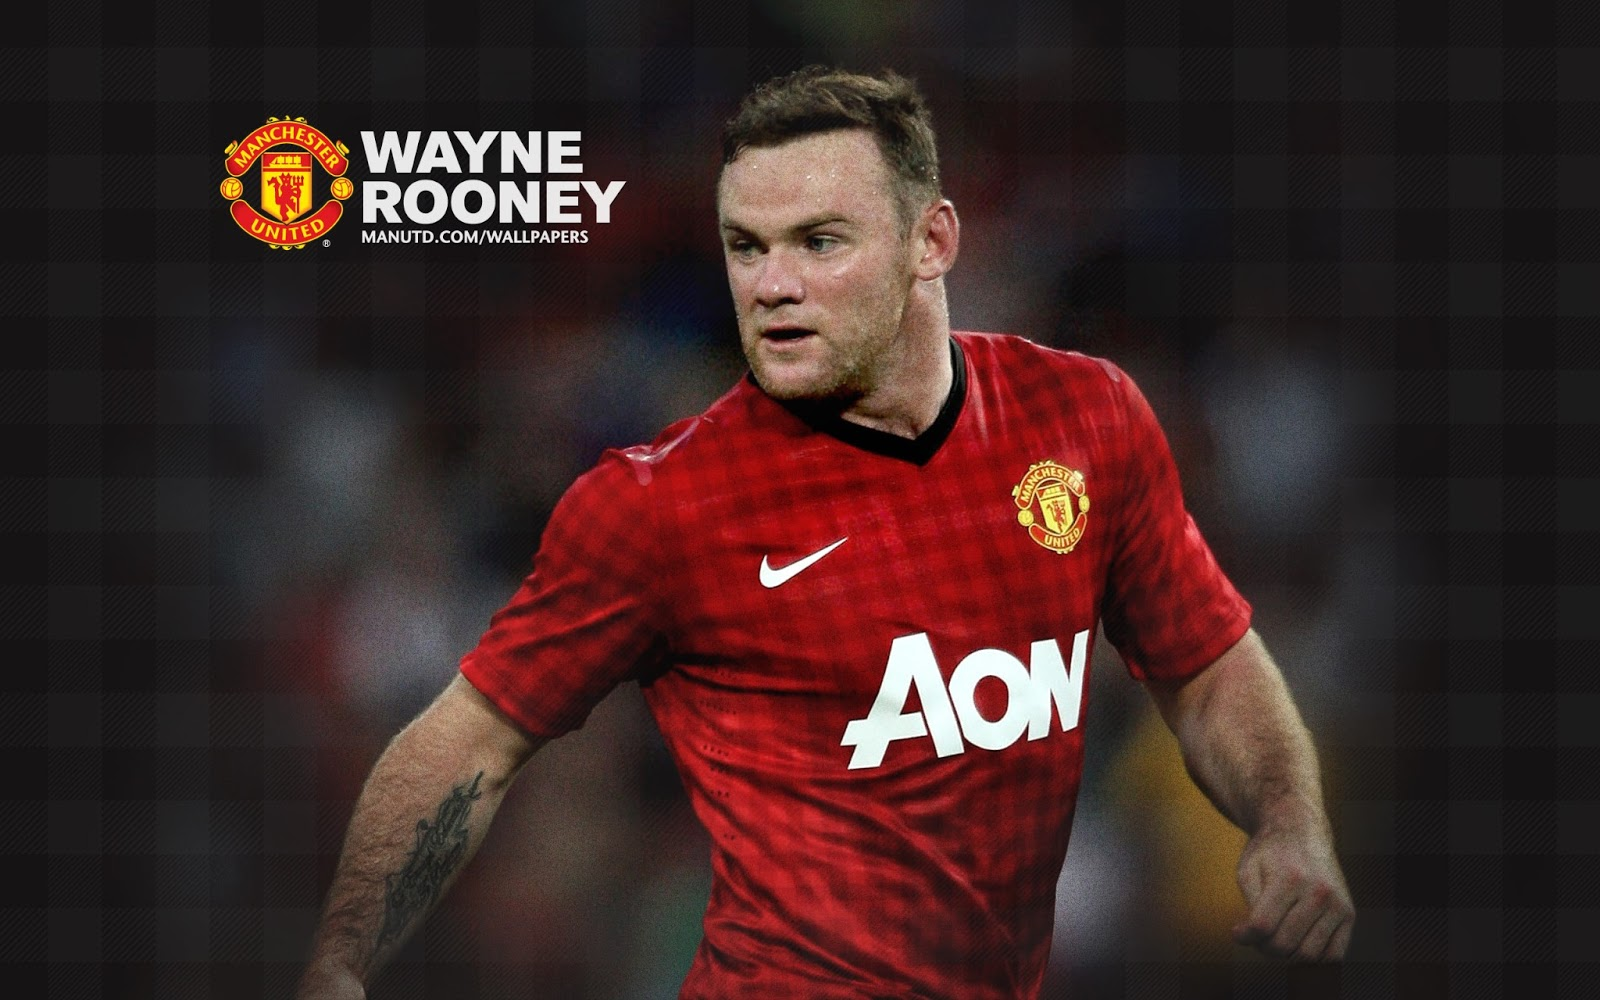 Wayne Rooney Manchester United Manchester United Wayne Rooney wallpaper world